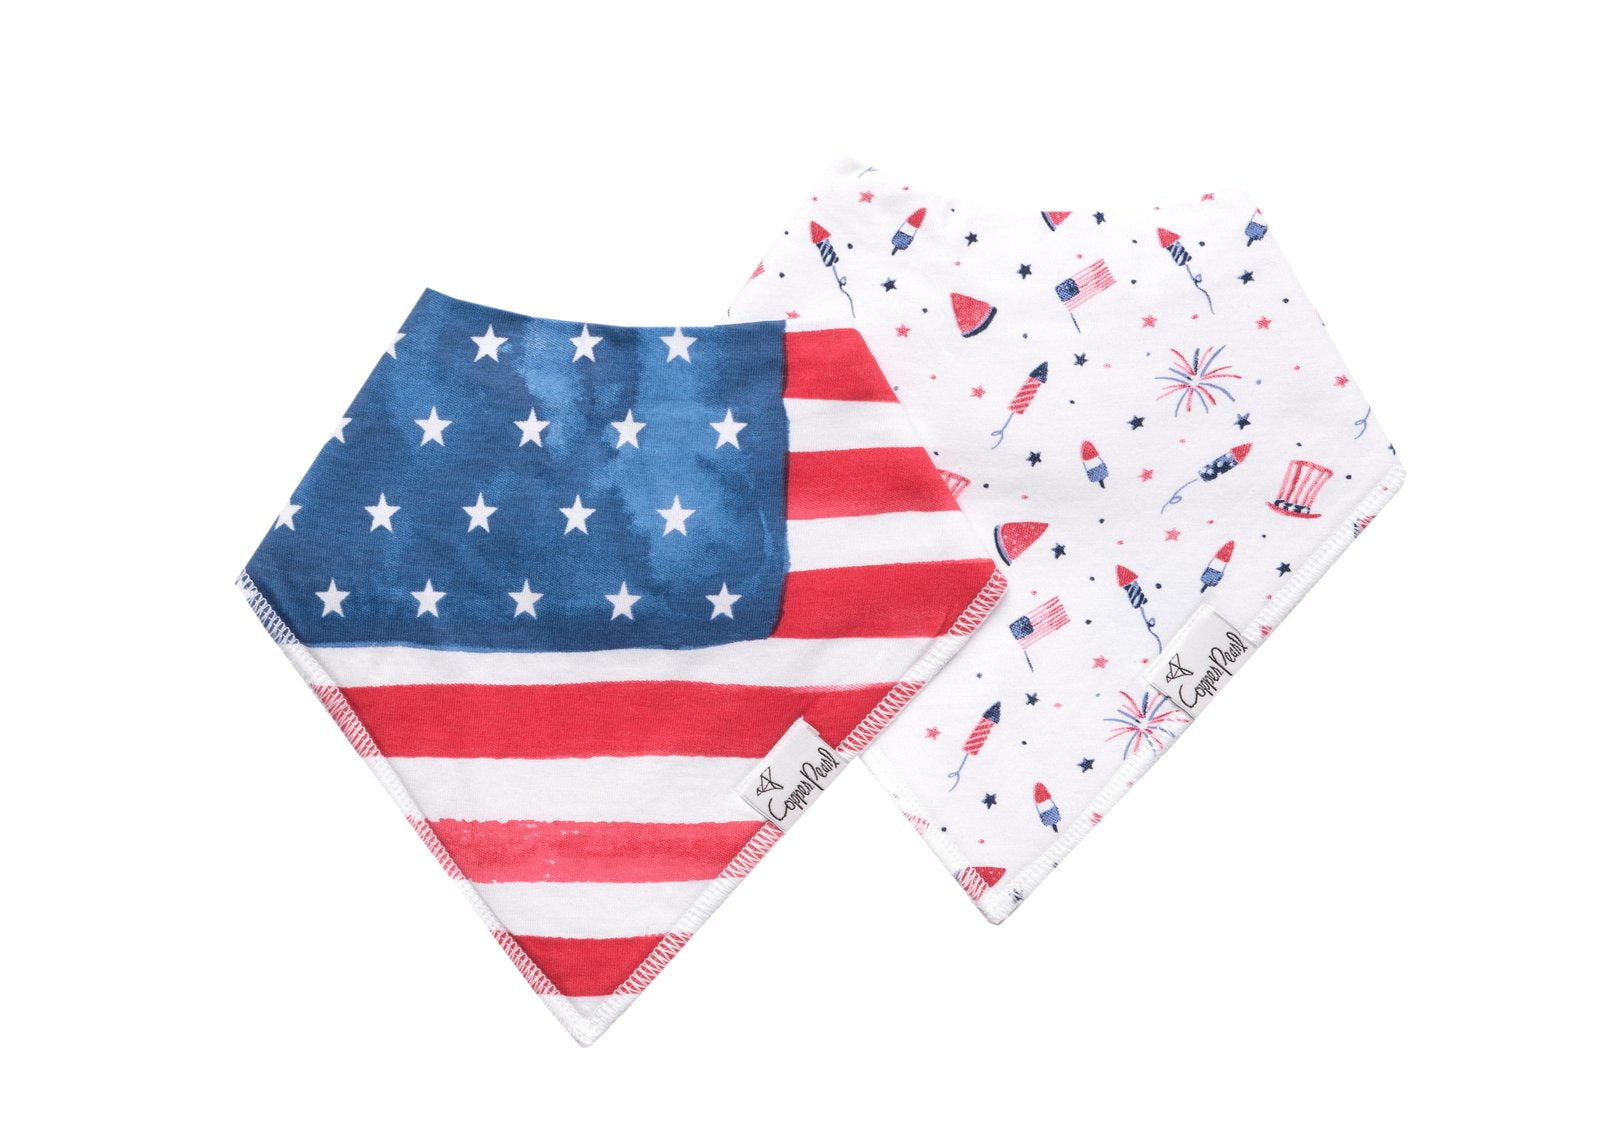 Copper Pearl Bandana Bib (Set of 2) - Patriot